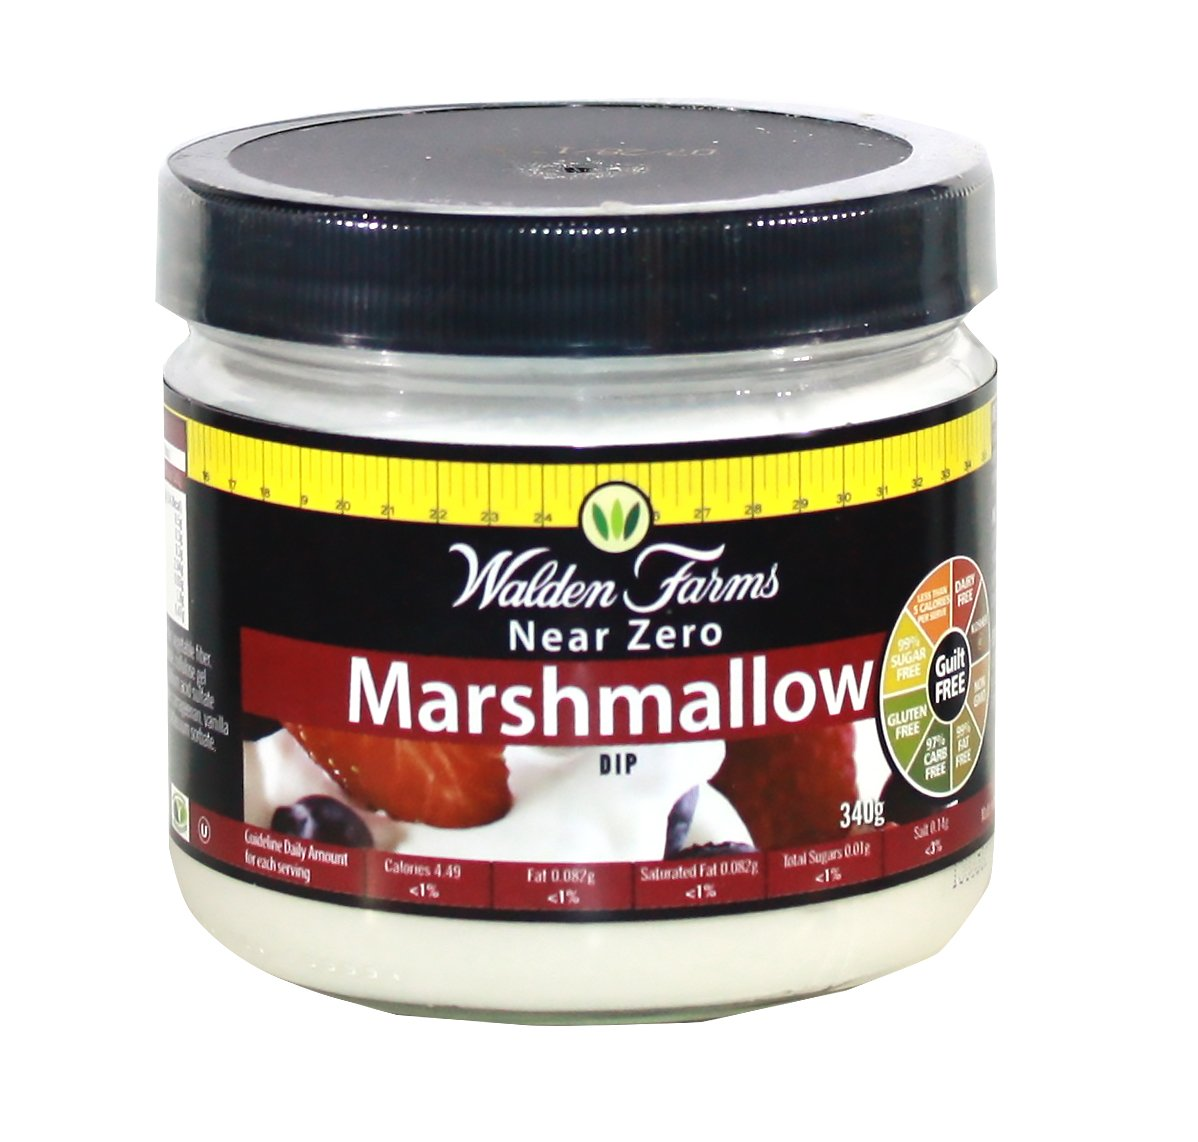 Walden Farms Marshmallow Dip, 12-Ounce Bottles (Pack of 6)